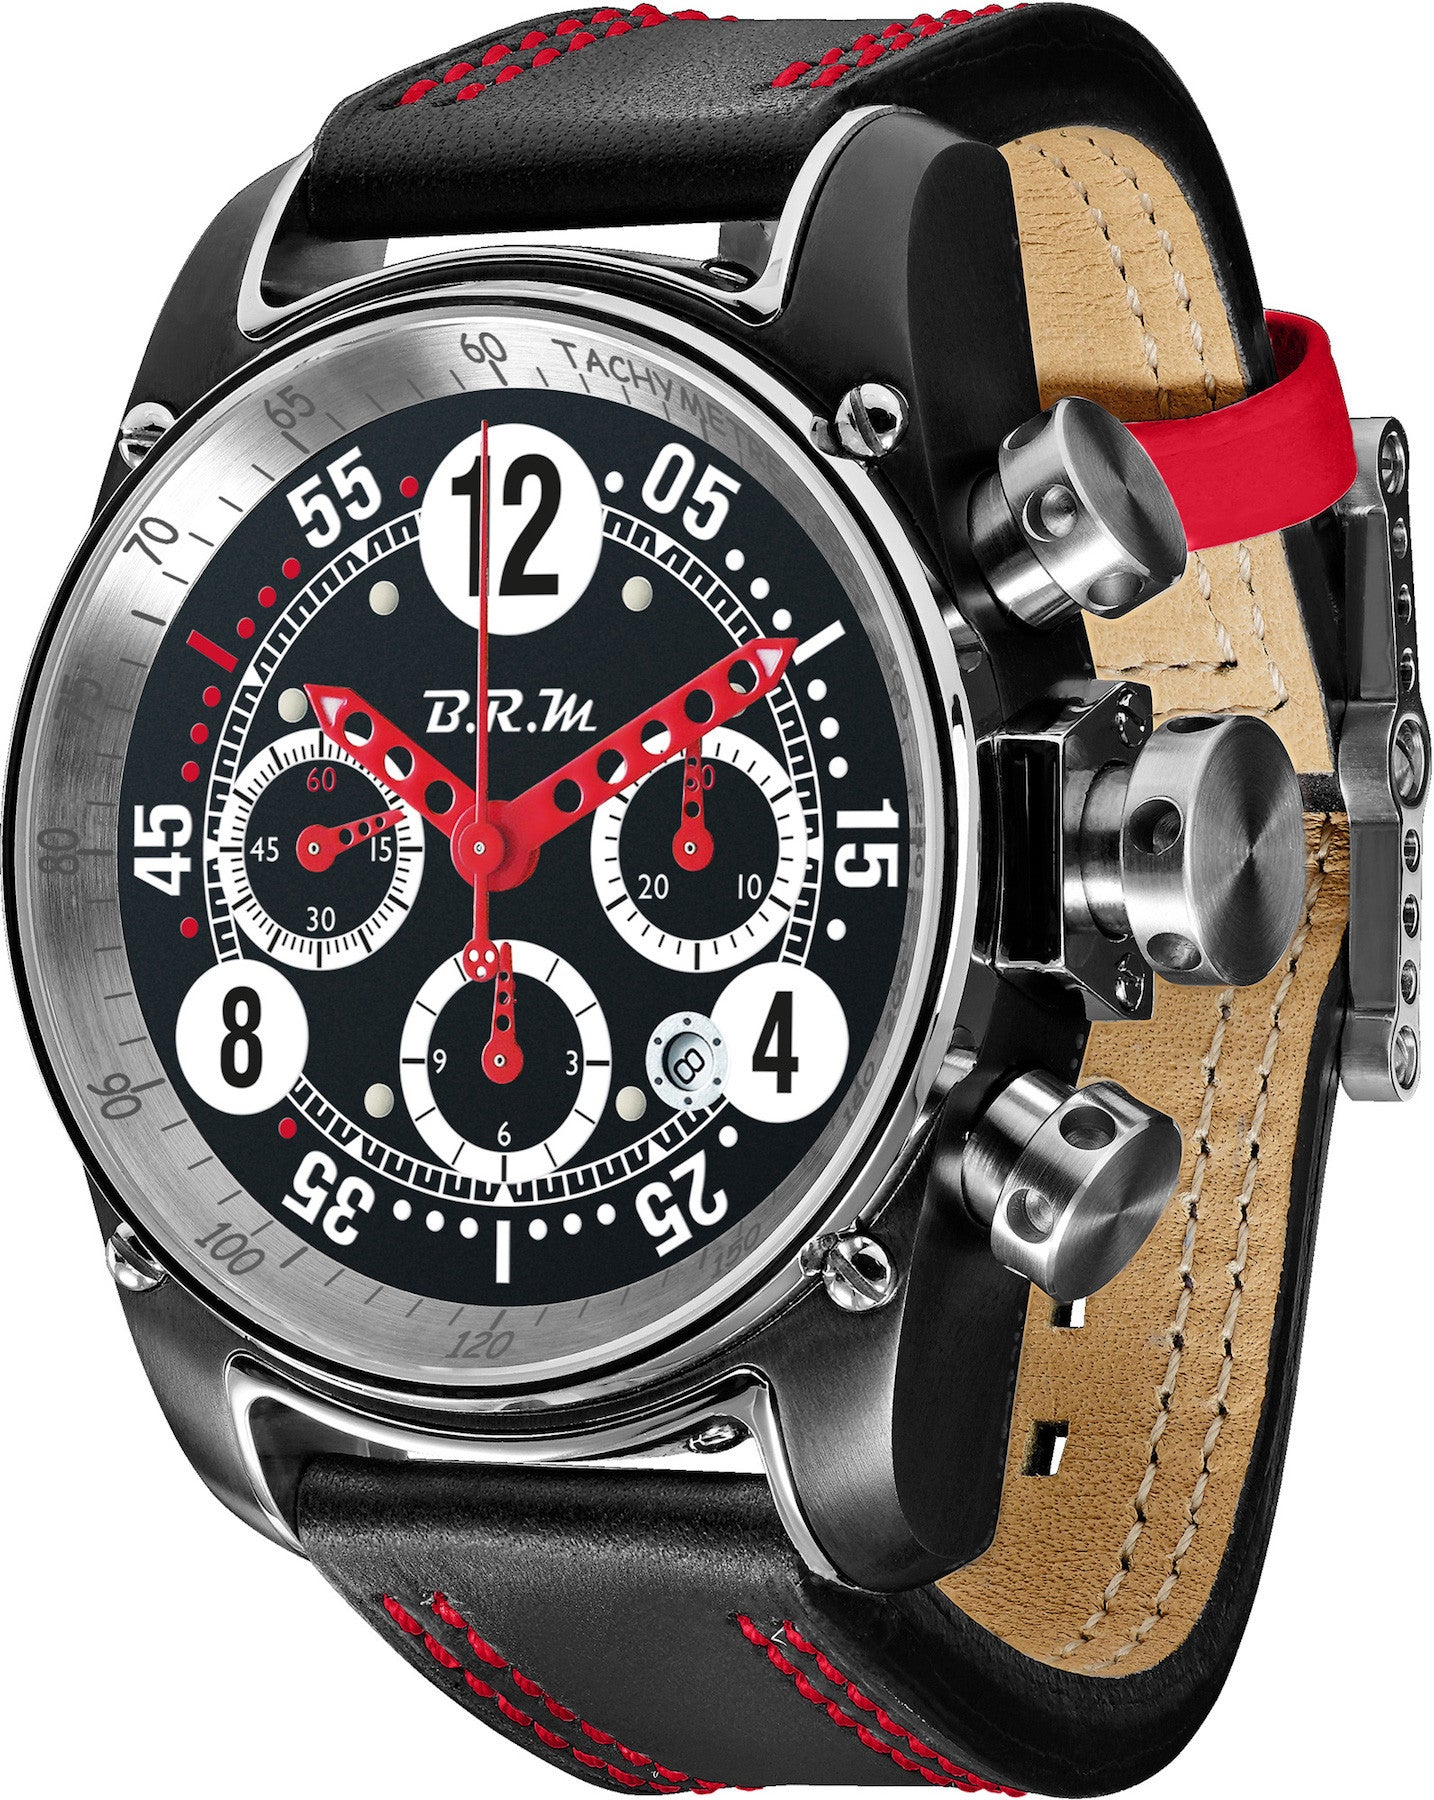 B.R.M Watch T12-44 Drivemaster Red Hands